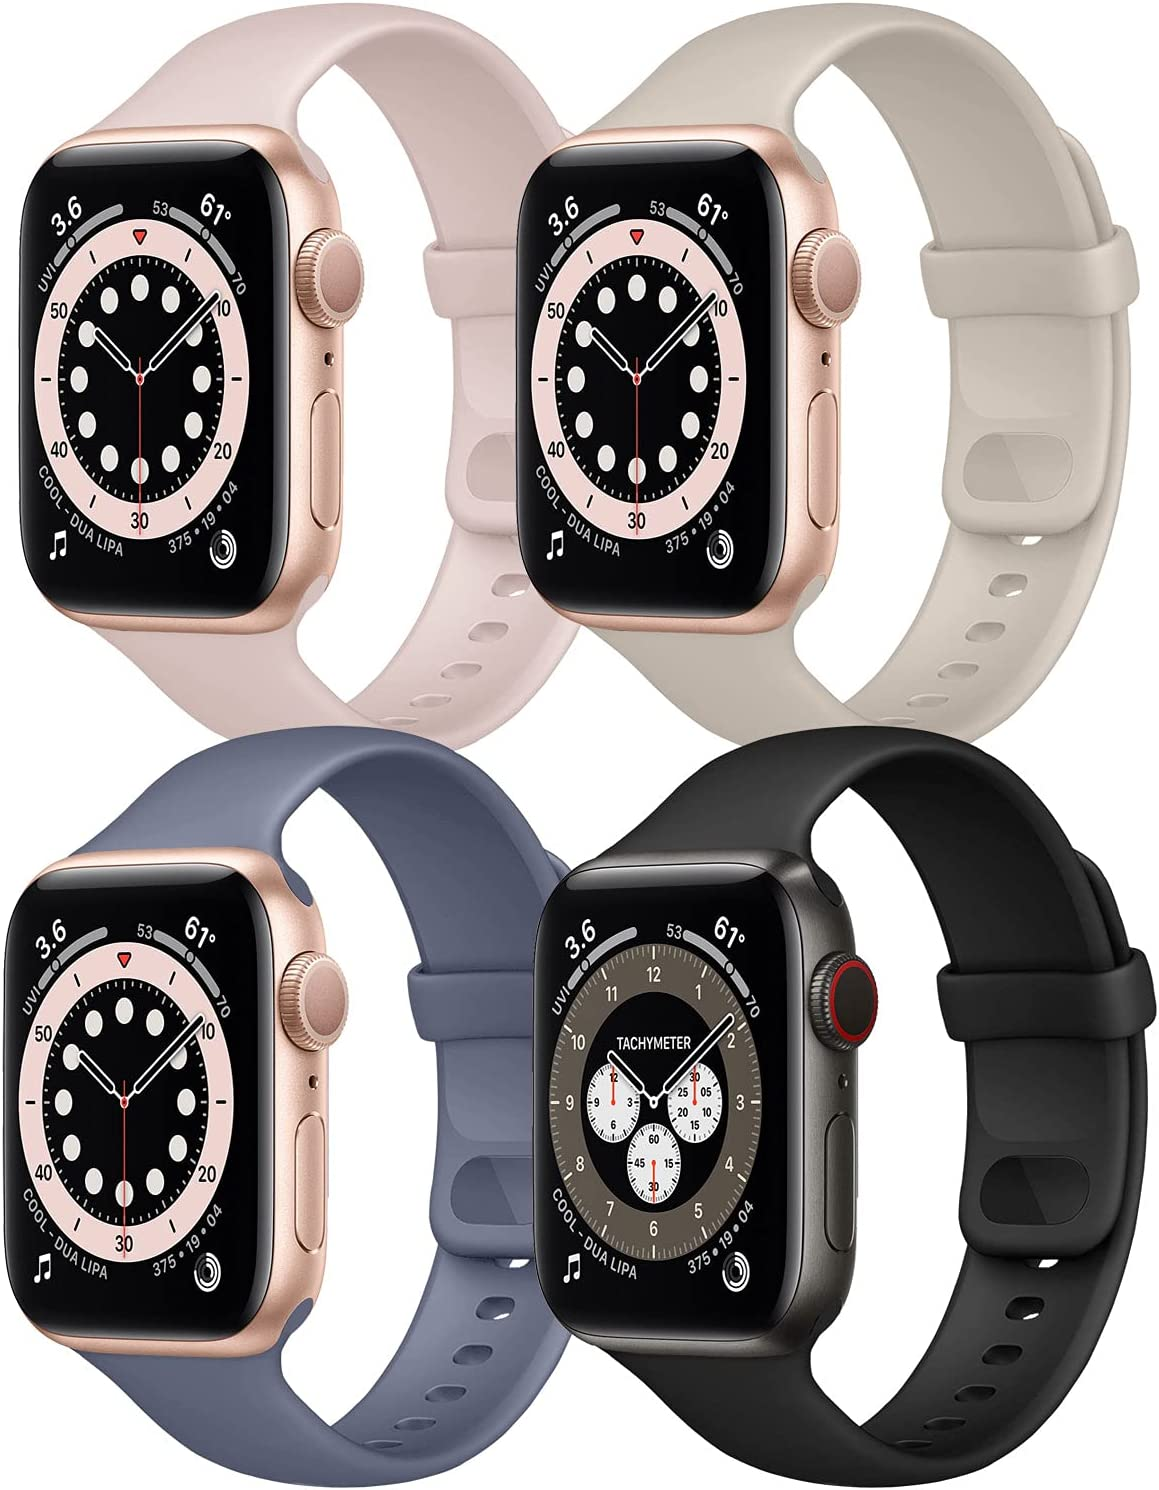 Hotflow 4 Pack Compatible with Apple Watch Bands 38mm 40mm for Women Men,Soft Silicone Sport Replacement Strap Compatible for iWatch Series SE 6 5 4 3 2 1(Black/Pink Sand/Stone/Lavender Gray,Size-S/M)